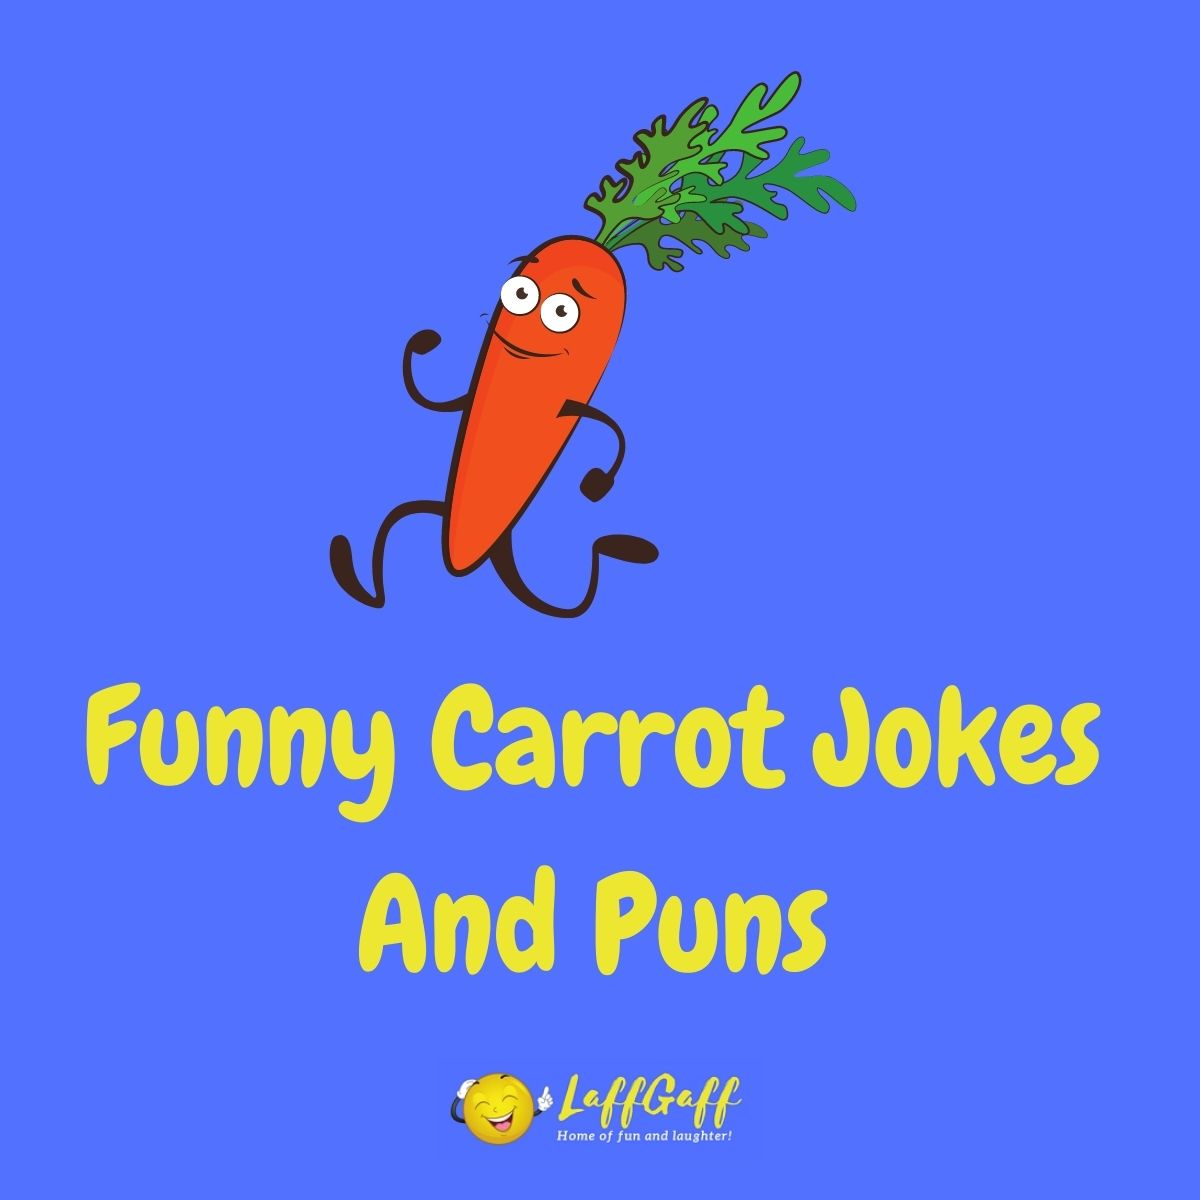 Featured image for a page of funny carrot jokes and puns.